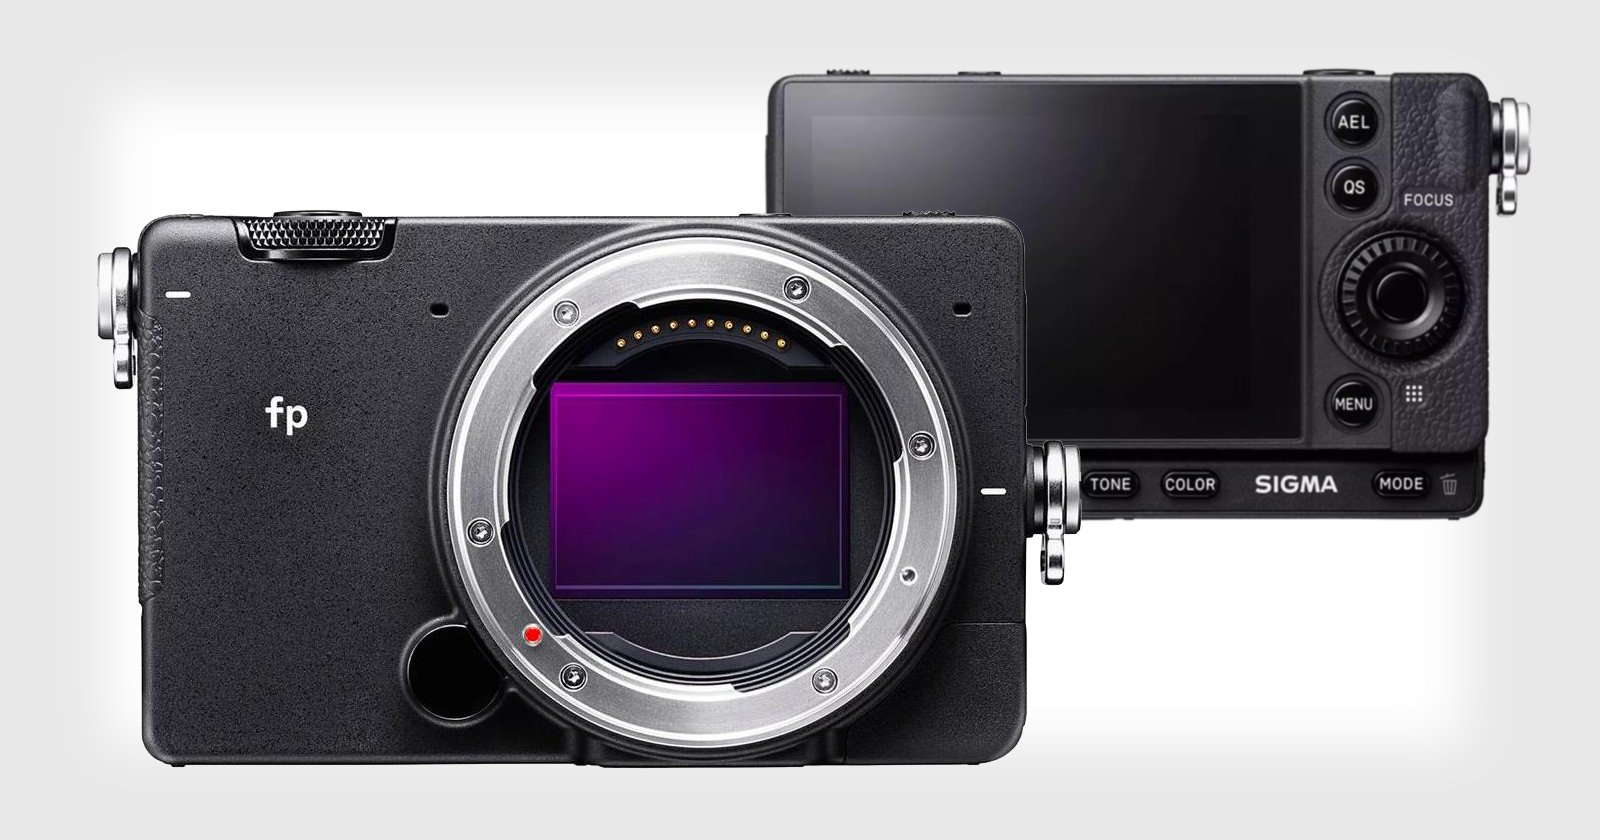 Sigma fp Officially Released, Will Cost $1,900 and Ships October 25th